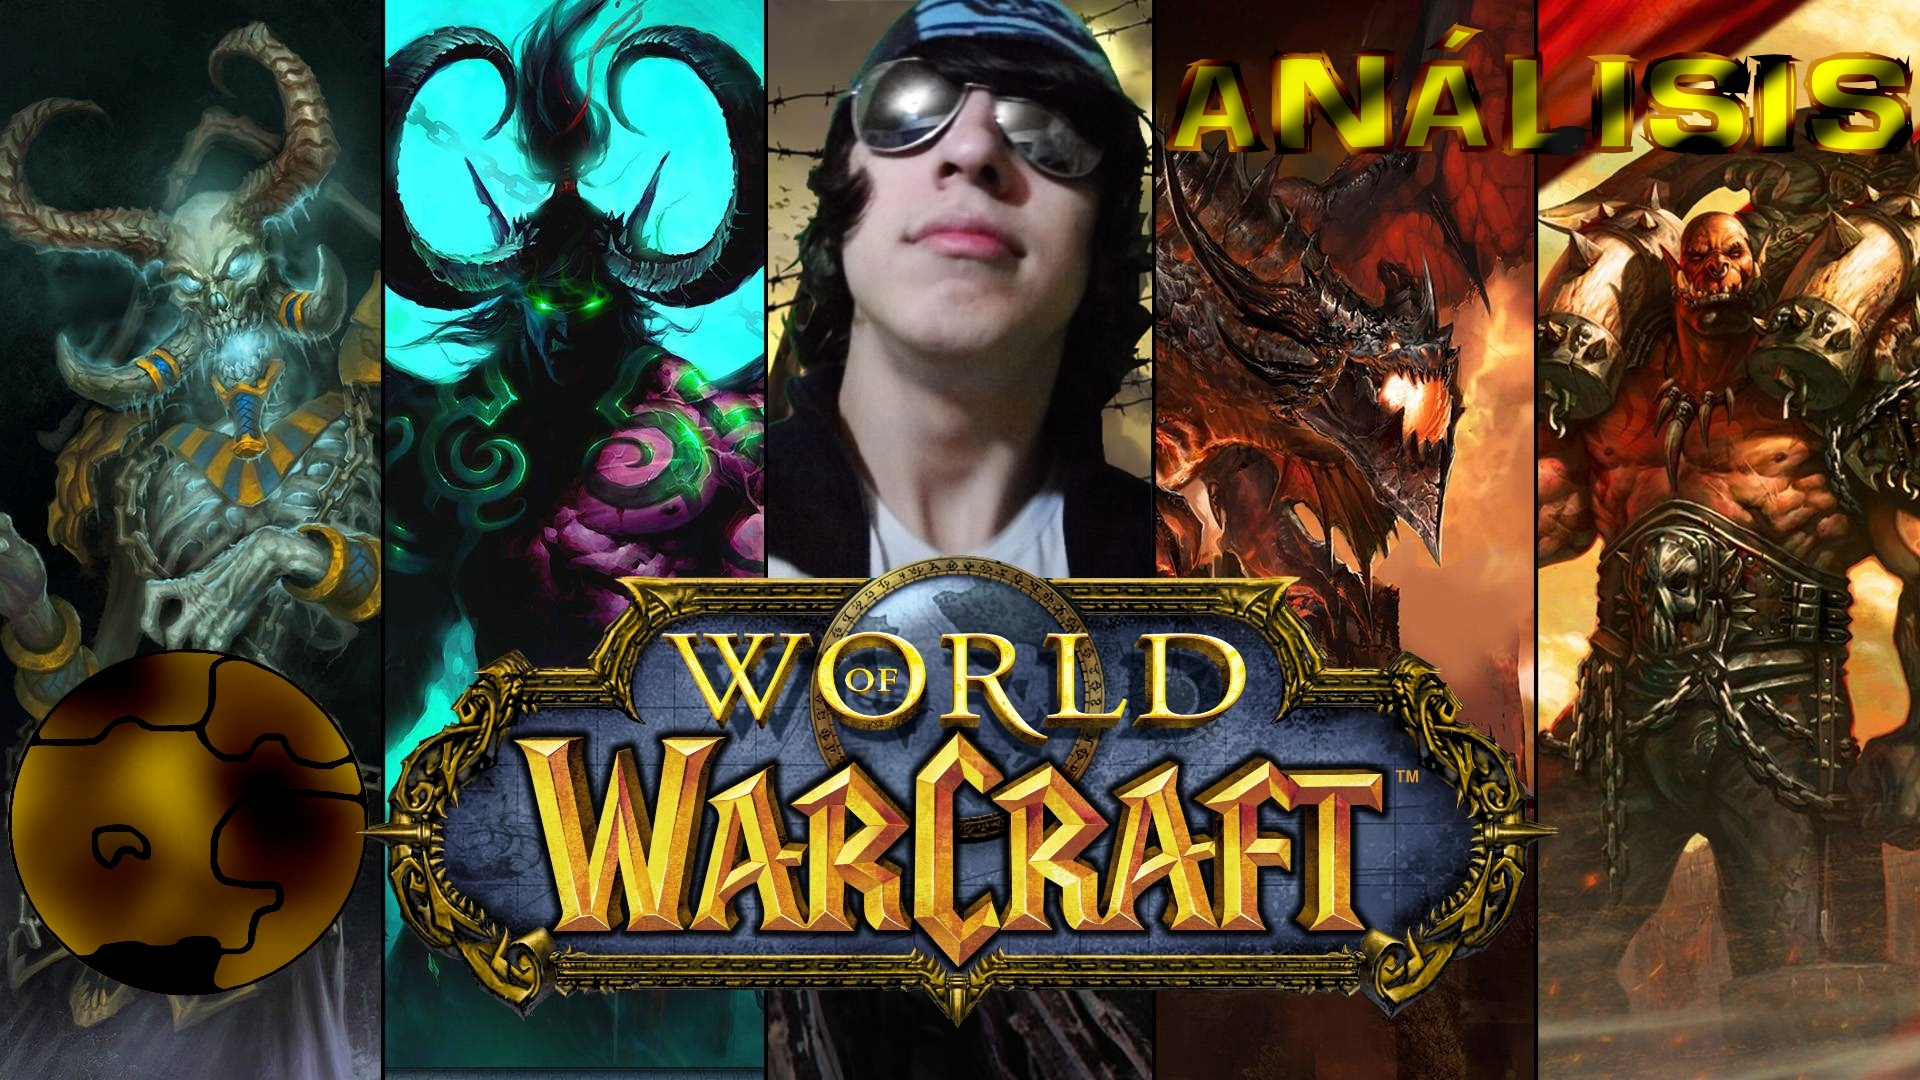 Mi Mundo Gamer: Análisis de World of Warcraft (vídeo)